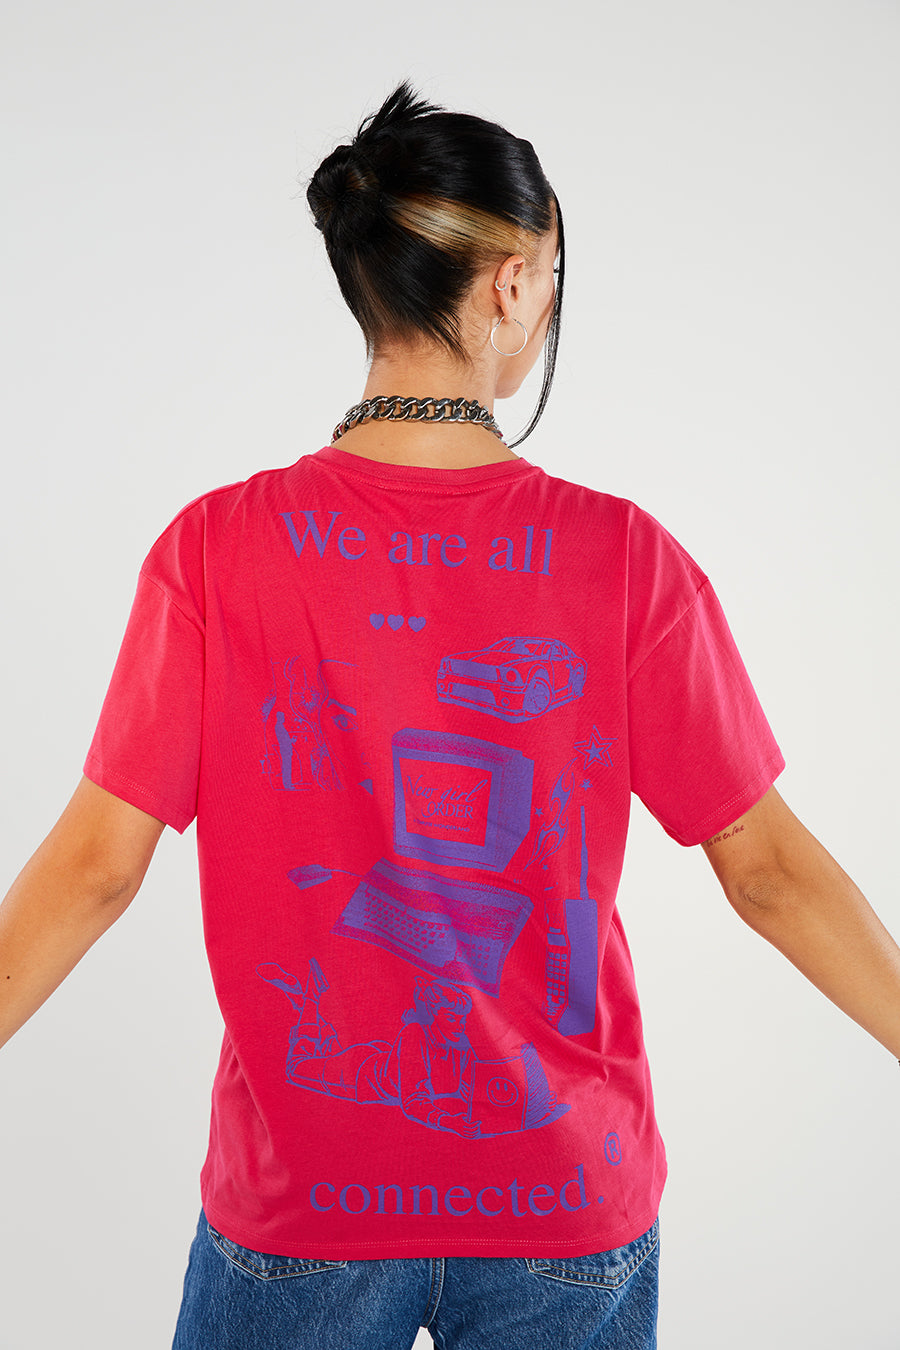 We are all connected tee pink